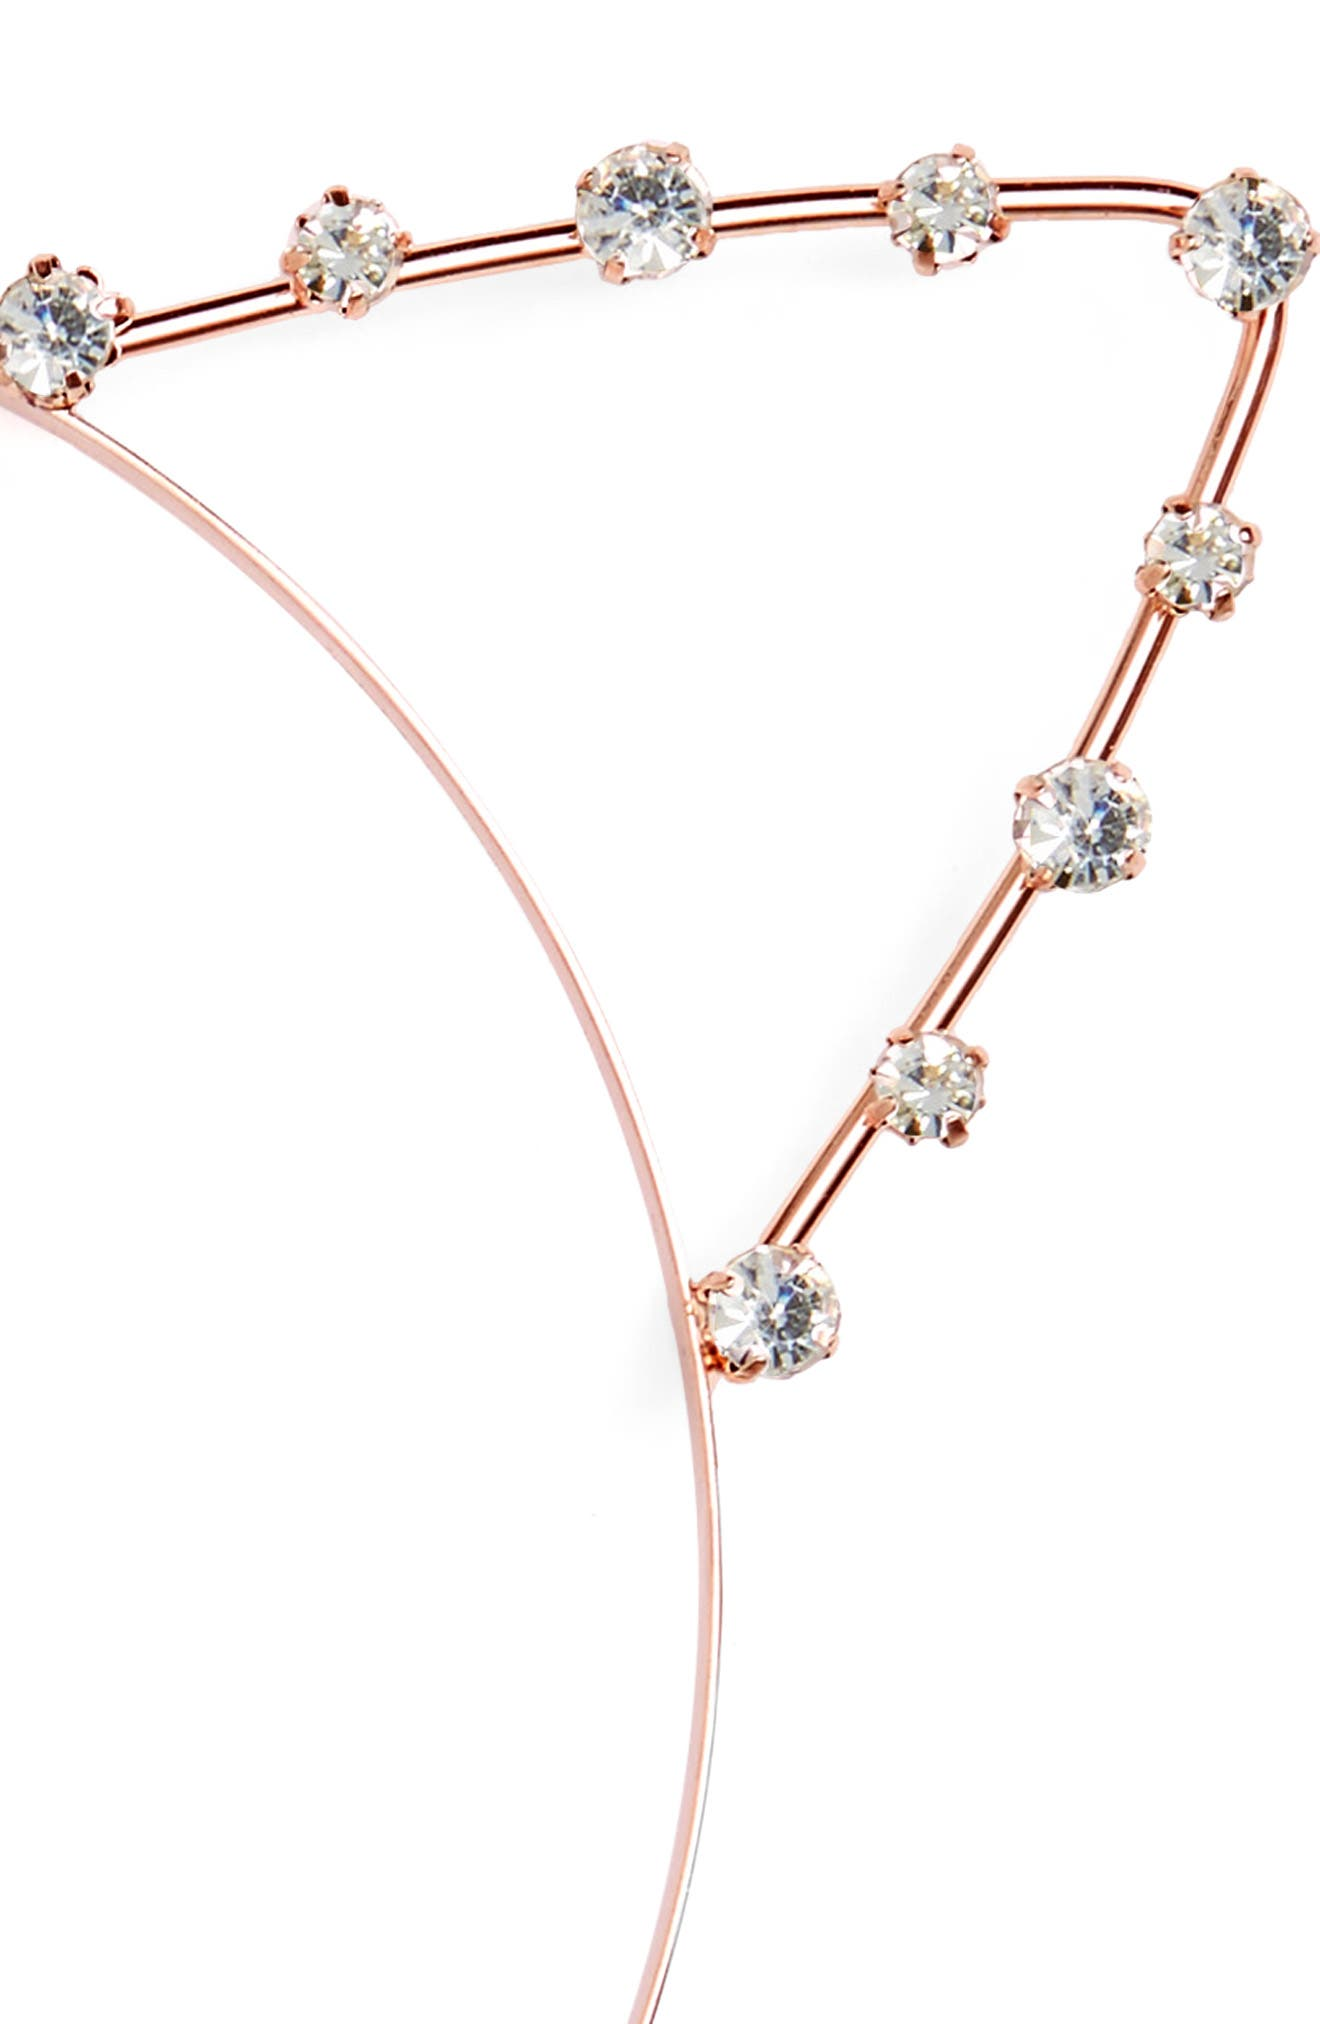 Crystal Cat Ears Headband,                             Alternate thumbnail 2, color,                             Rose Gold